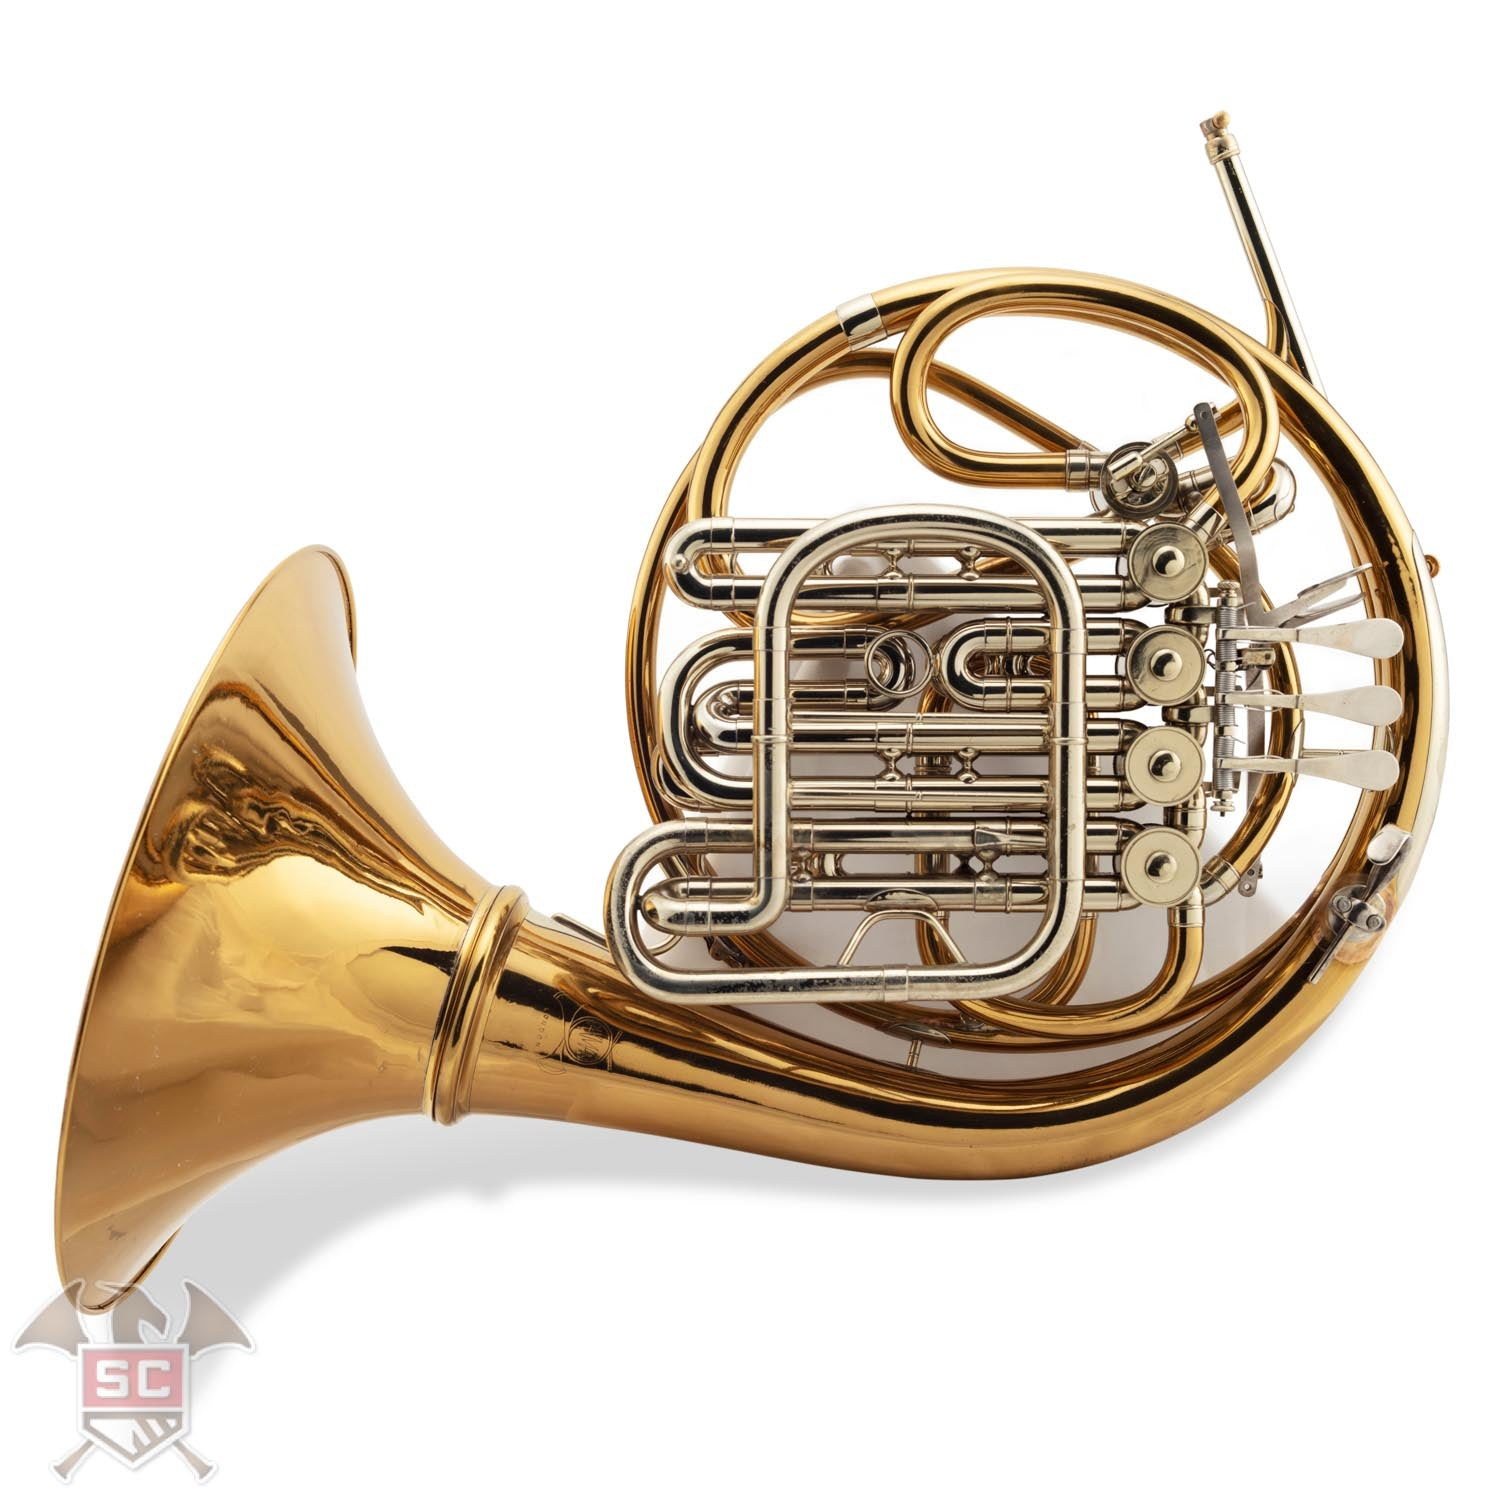 Paxman Model 40ML Descant Horn Serial Number 12714